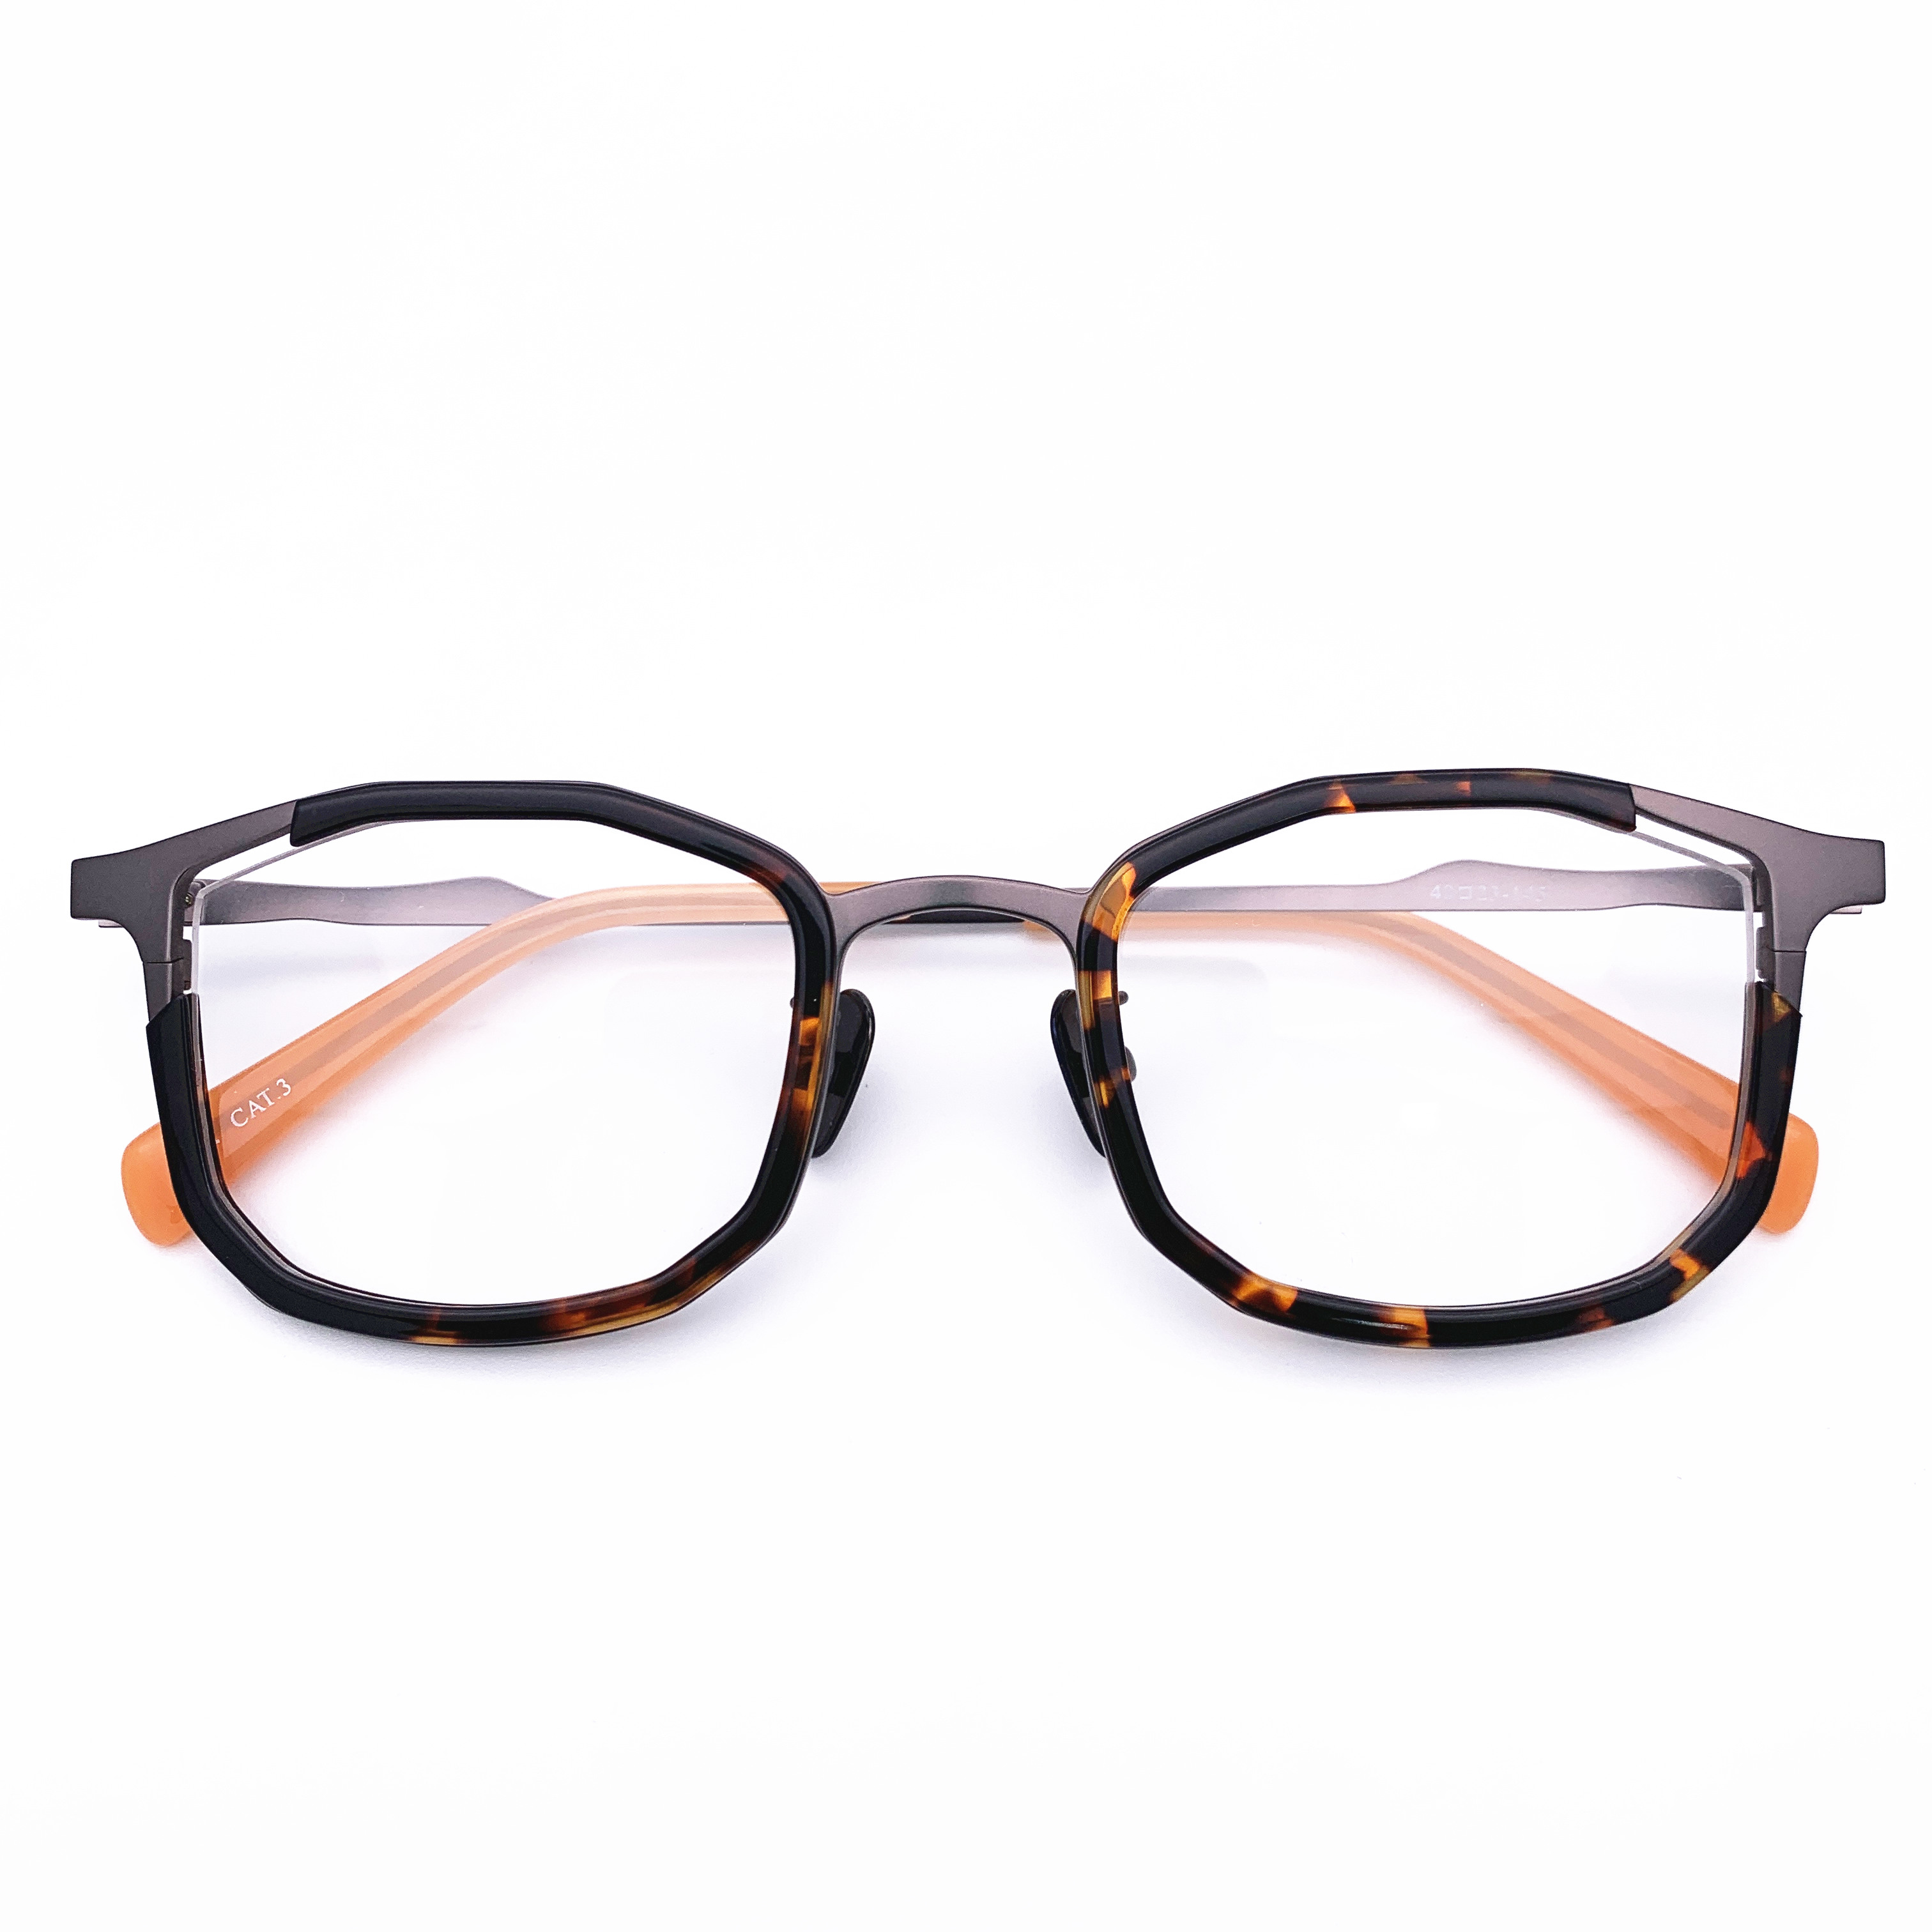 Belight Optical Japan Design Irregular Shape Spectacle Frame Men Women Prescription Eyeglasses Retro Optical  Eyewear MM-001